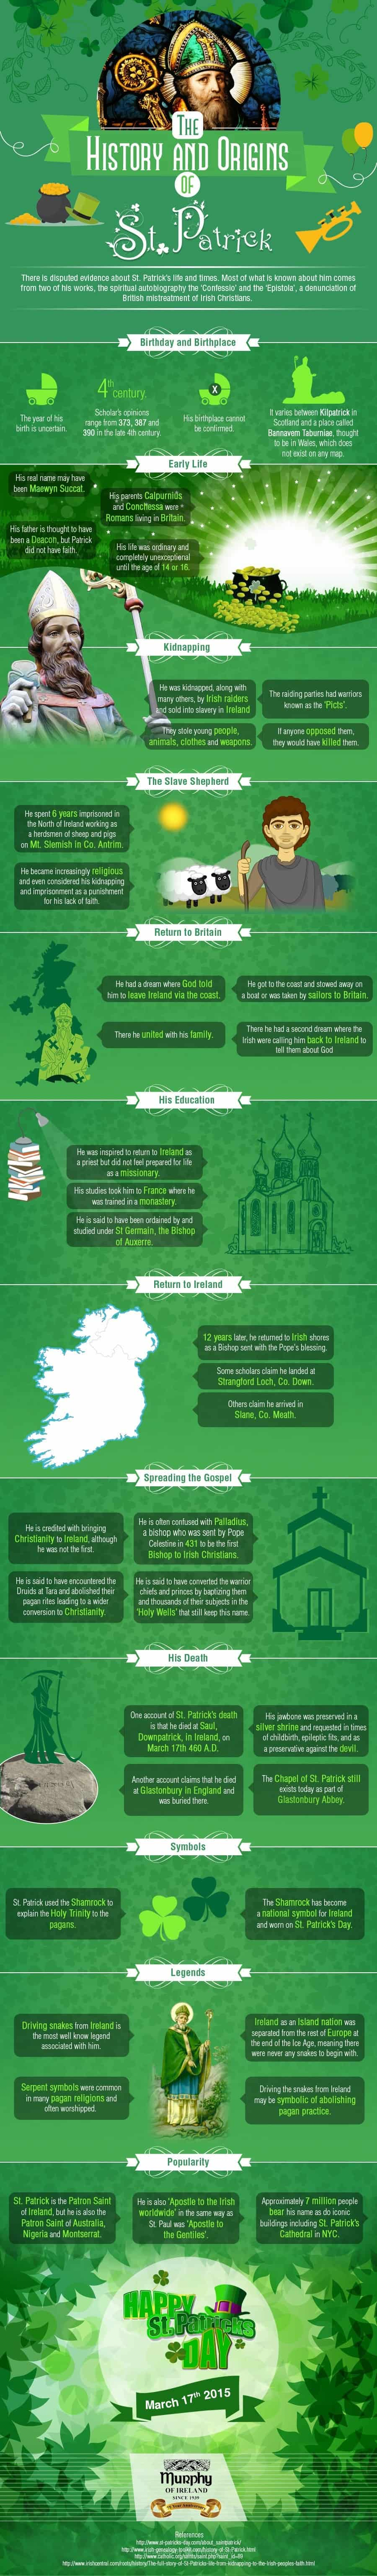 Origins of Saint Patrick